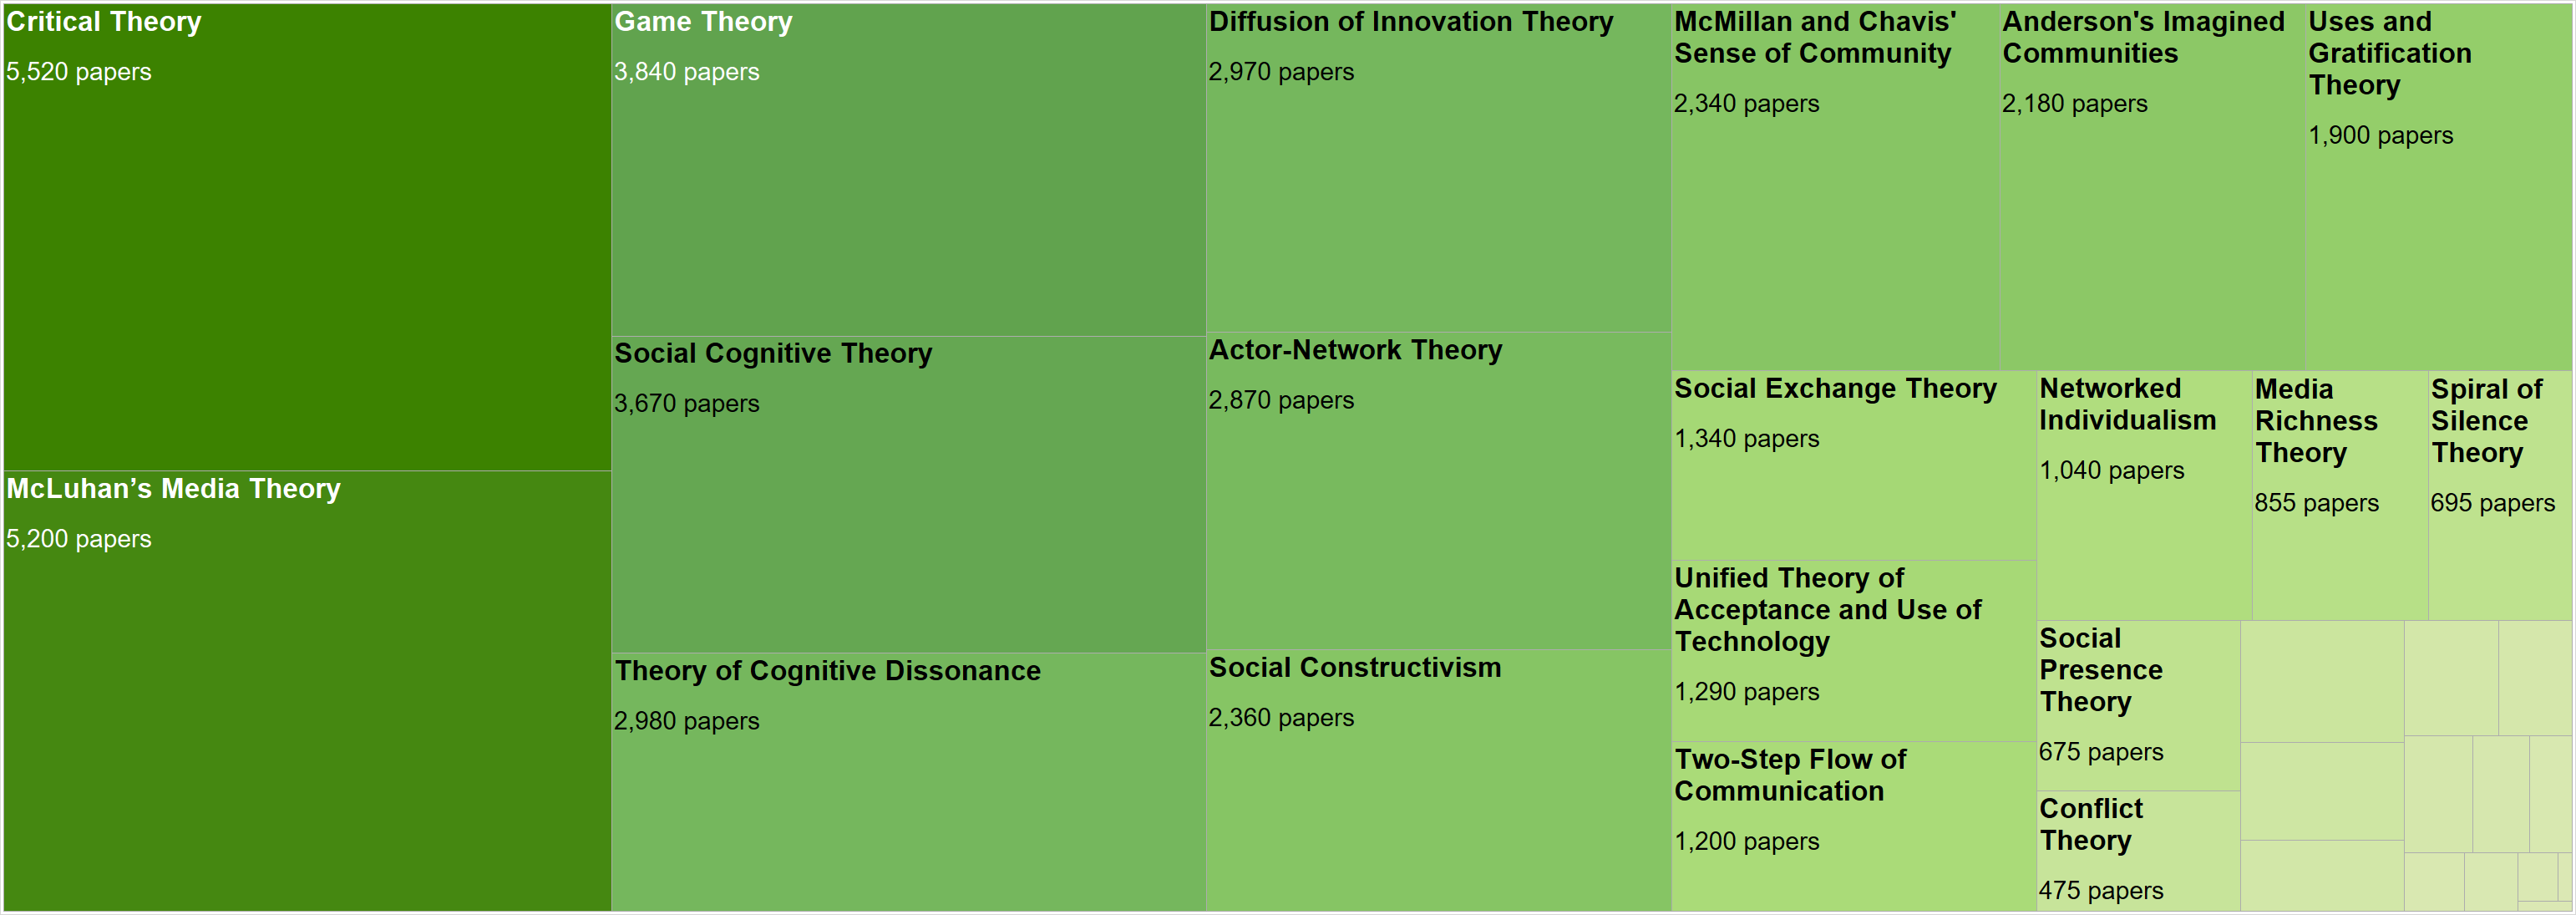 Figure 4: Theoretical Approaches Frequently Cited in Social Media Literature